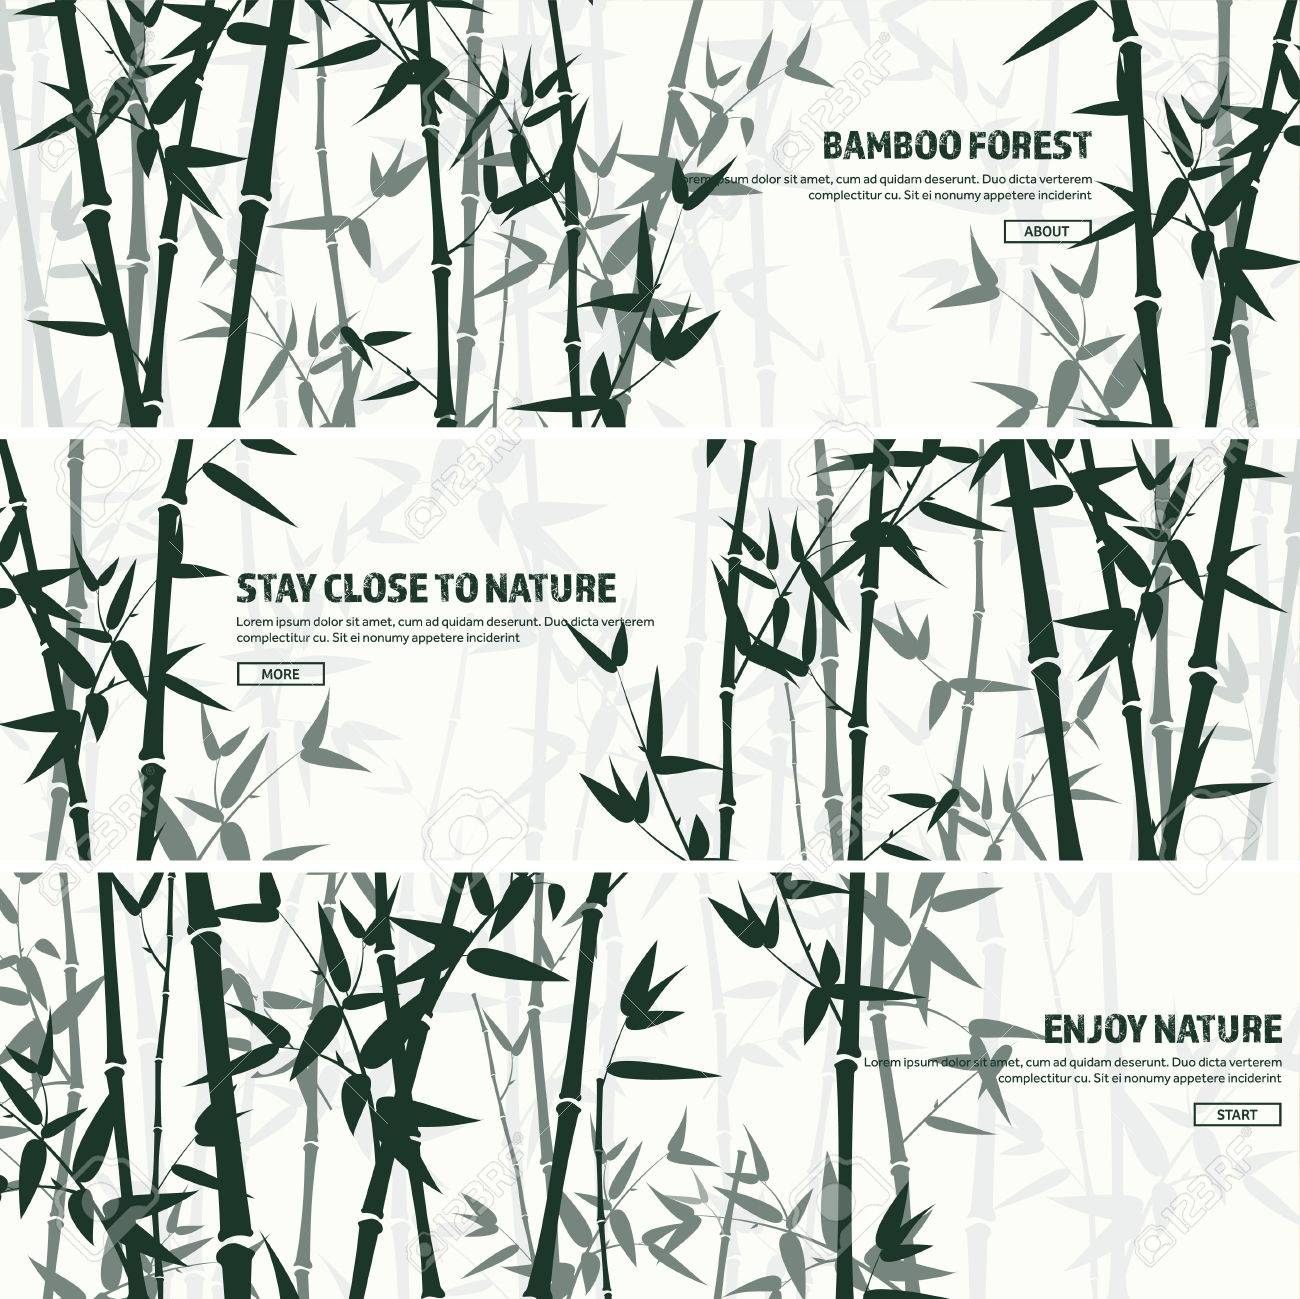 Bamboo forest set. Nature. Japan., China. Plant. Green tree with leaves. Rainforest in Asia. - 73591029